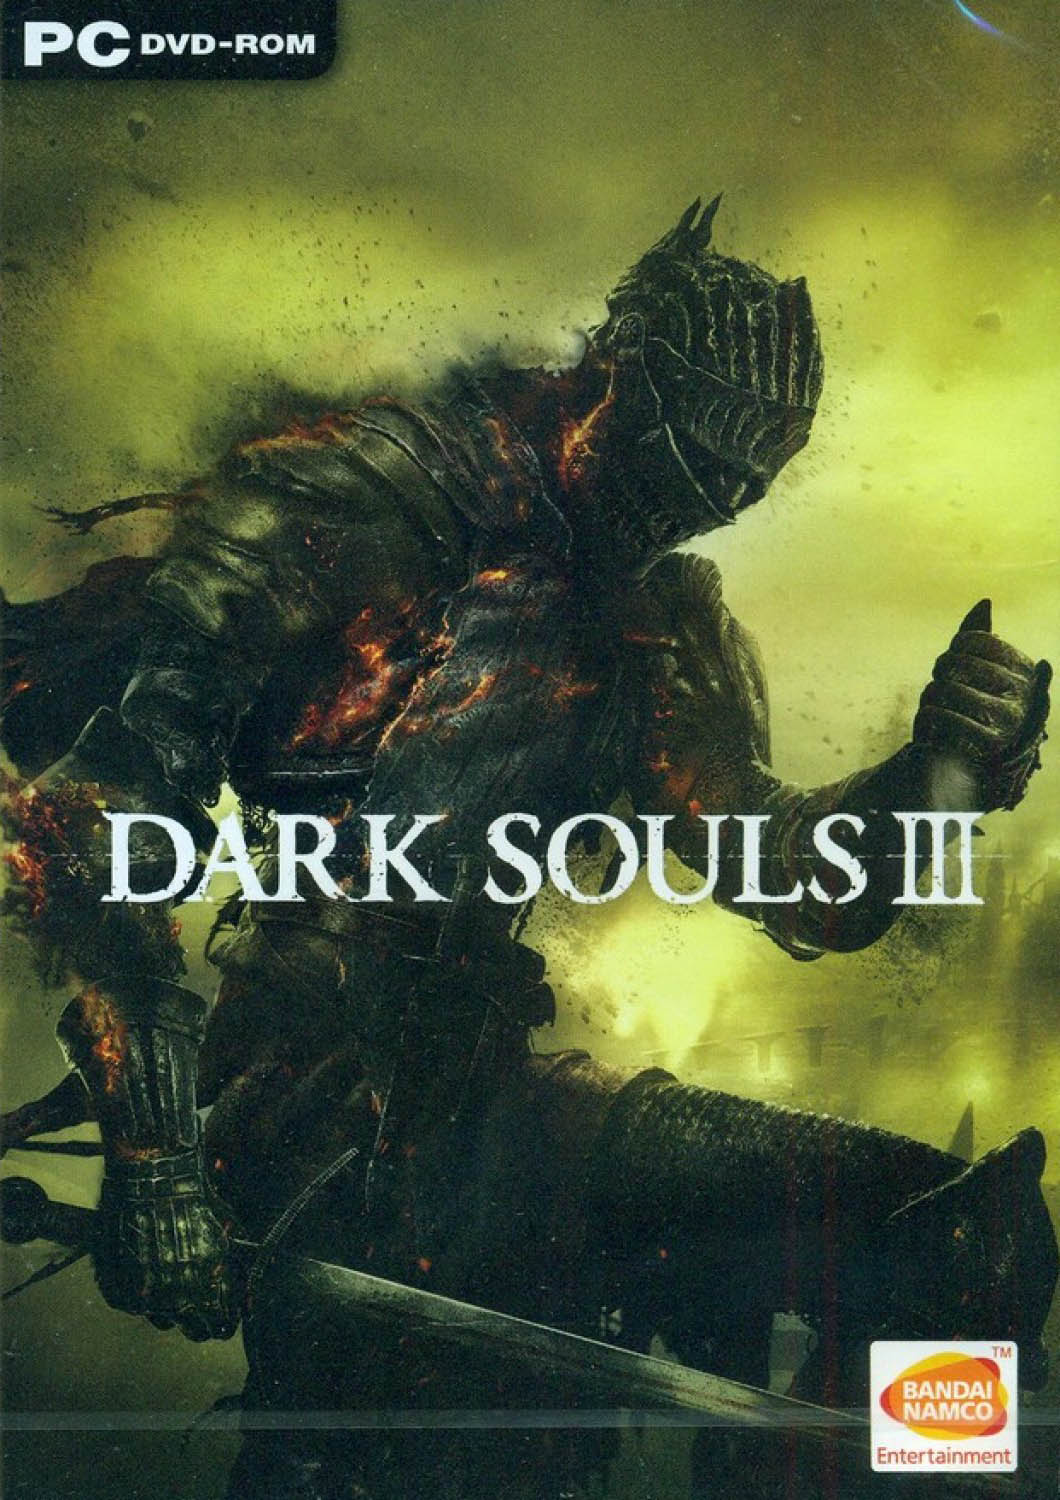 Dark Souls III PC издание в Азии